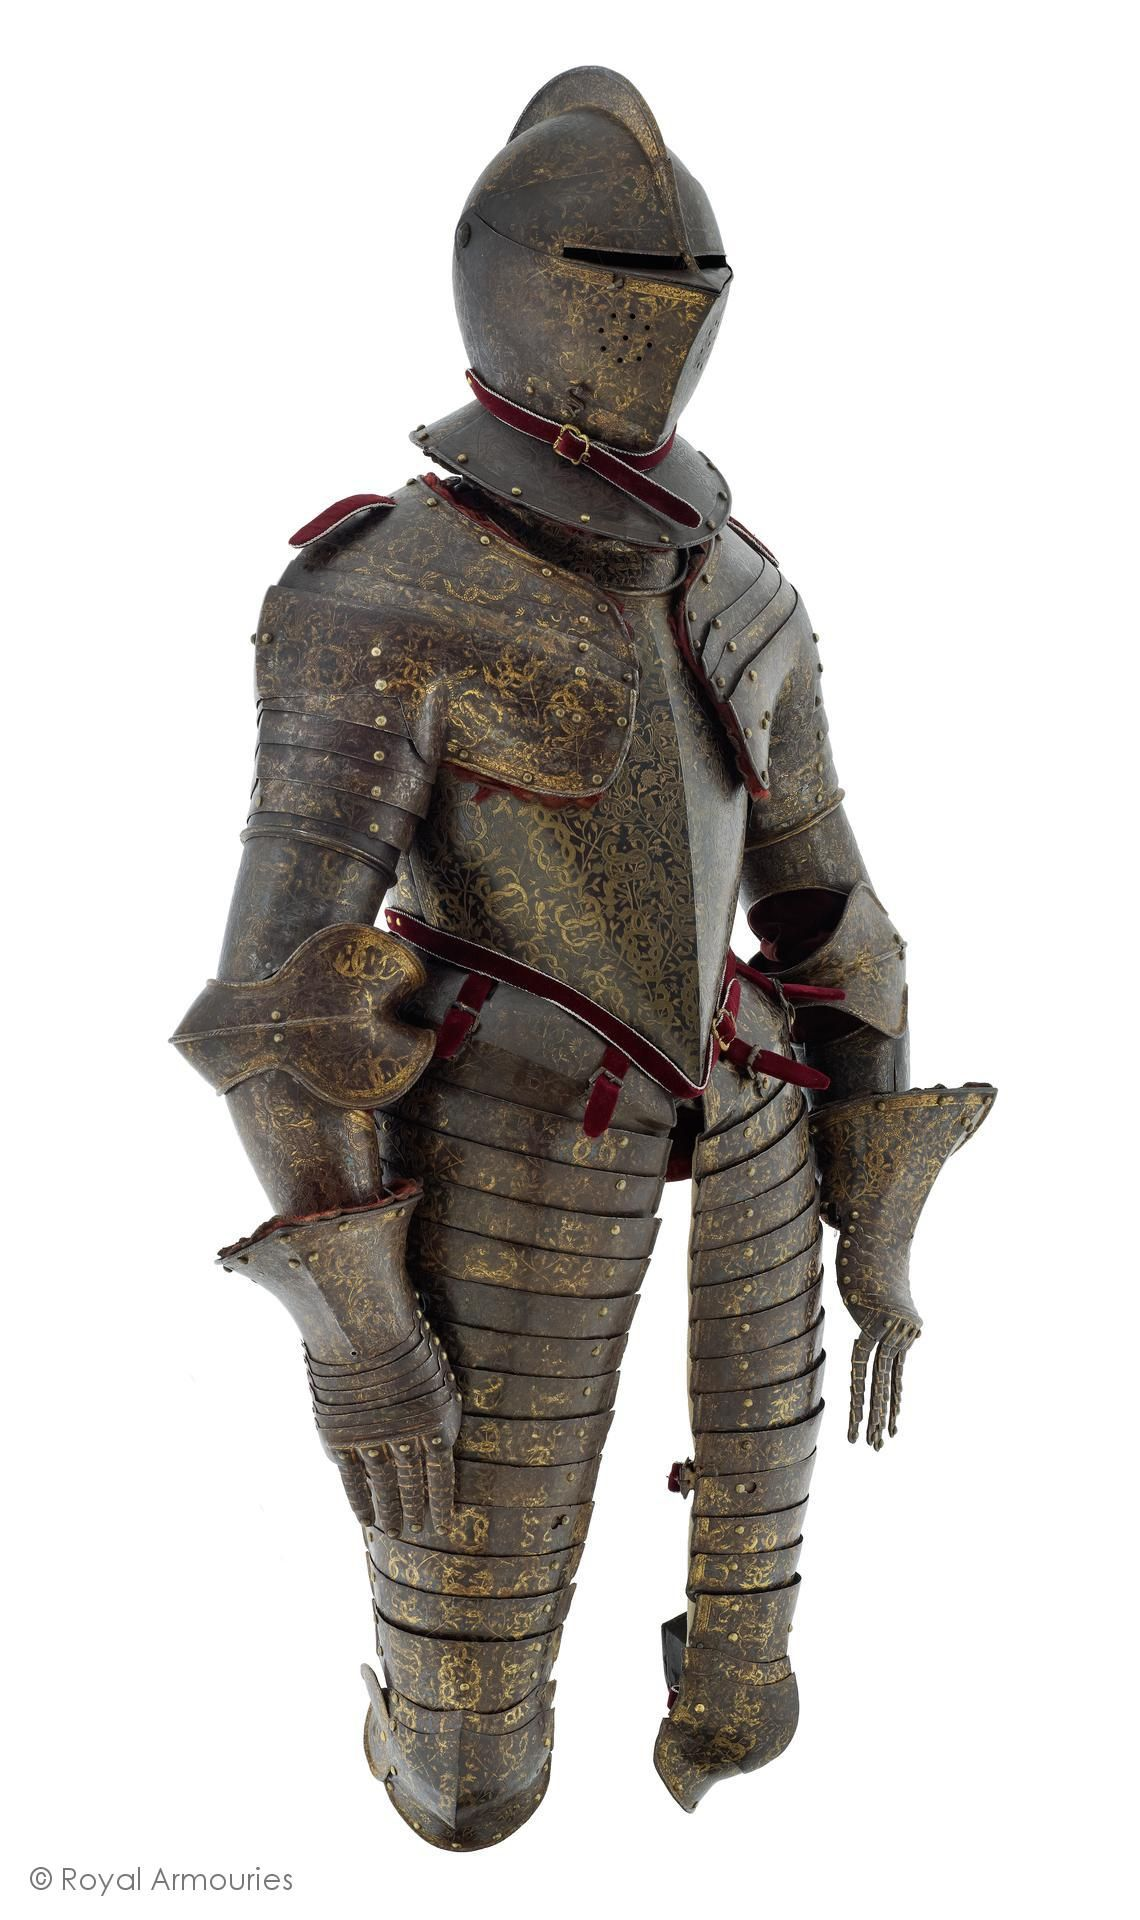 Henry Wriothesley Armour Sword And Armor History Knight